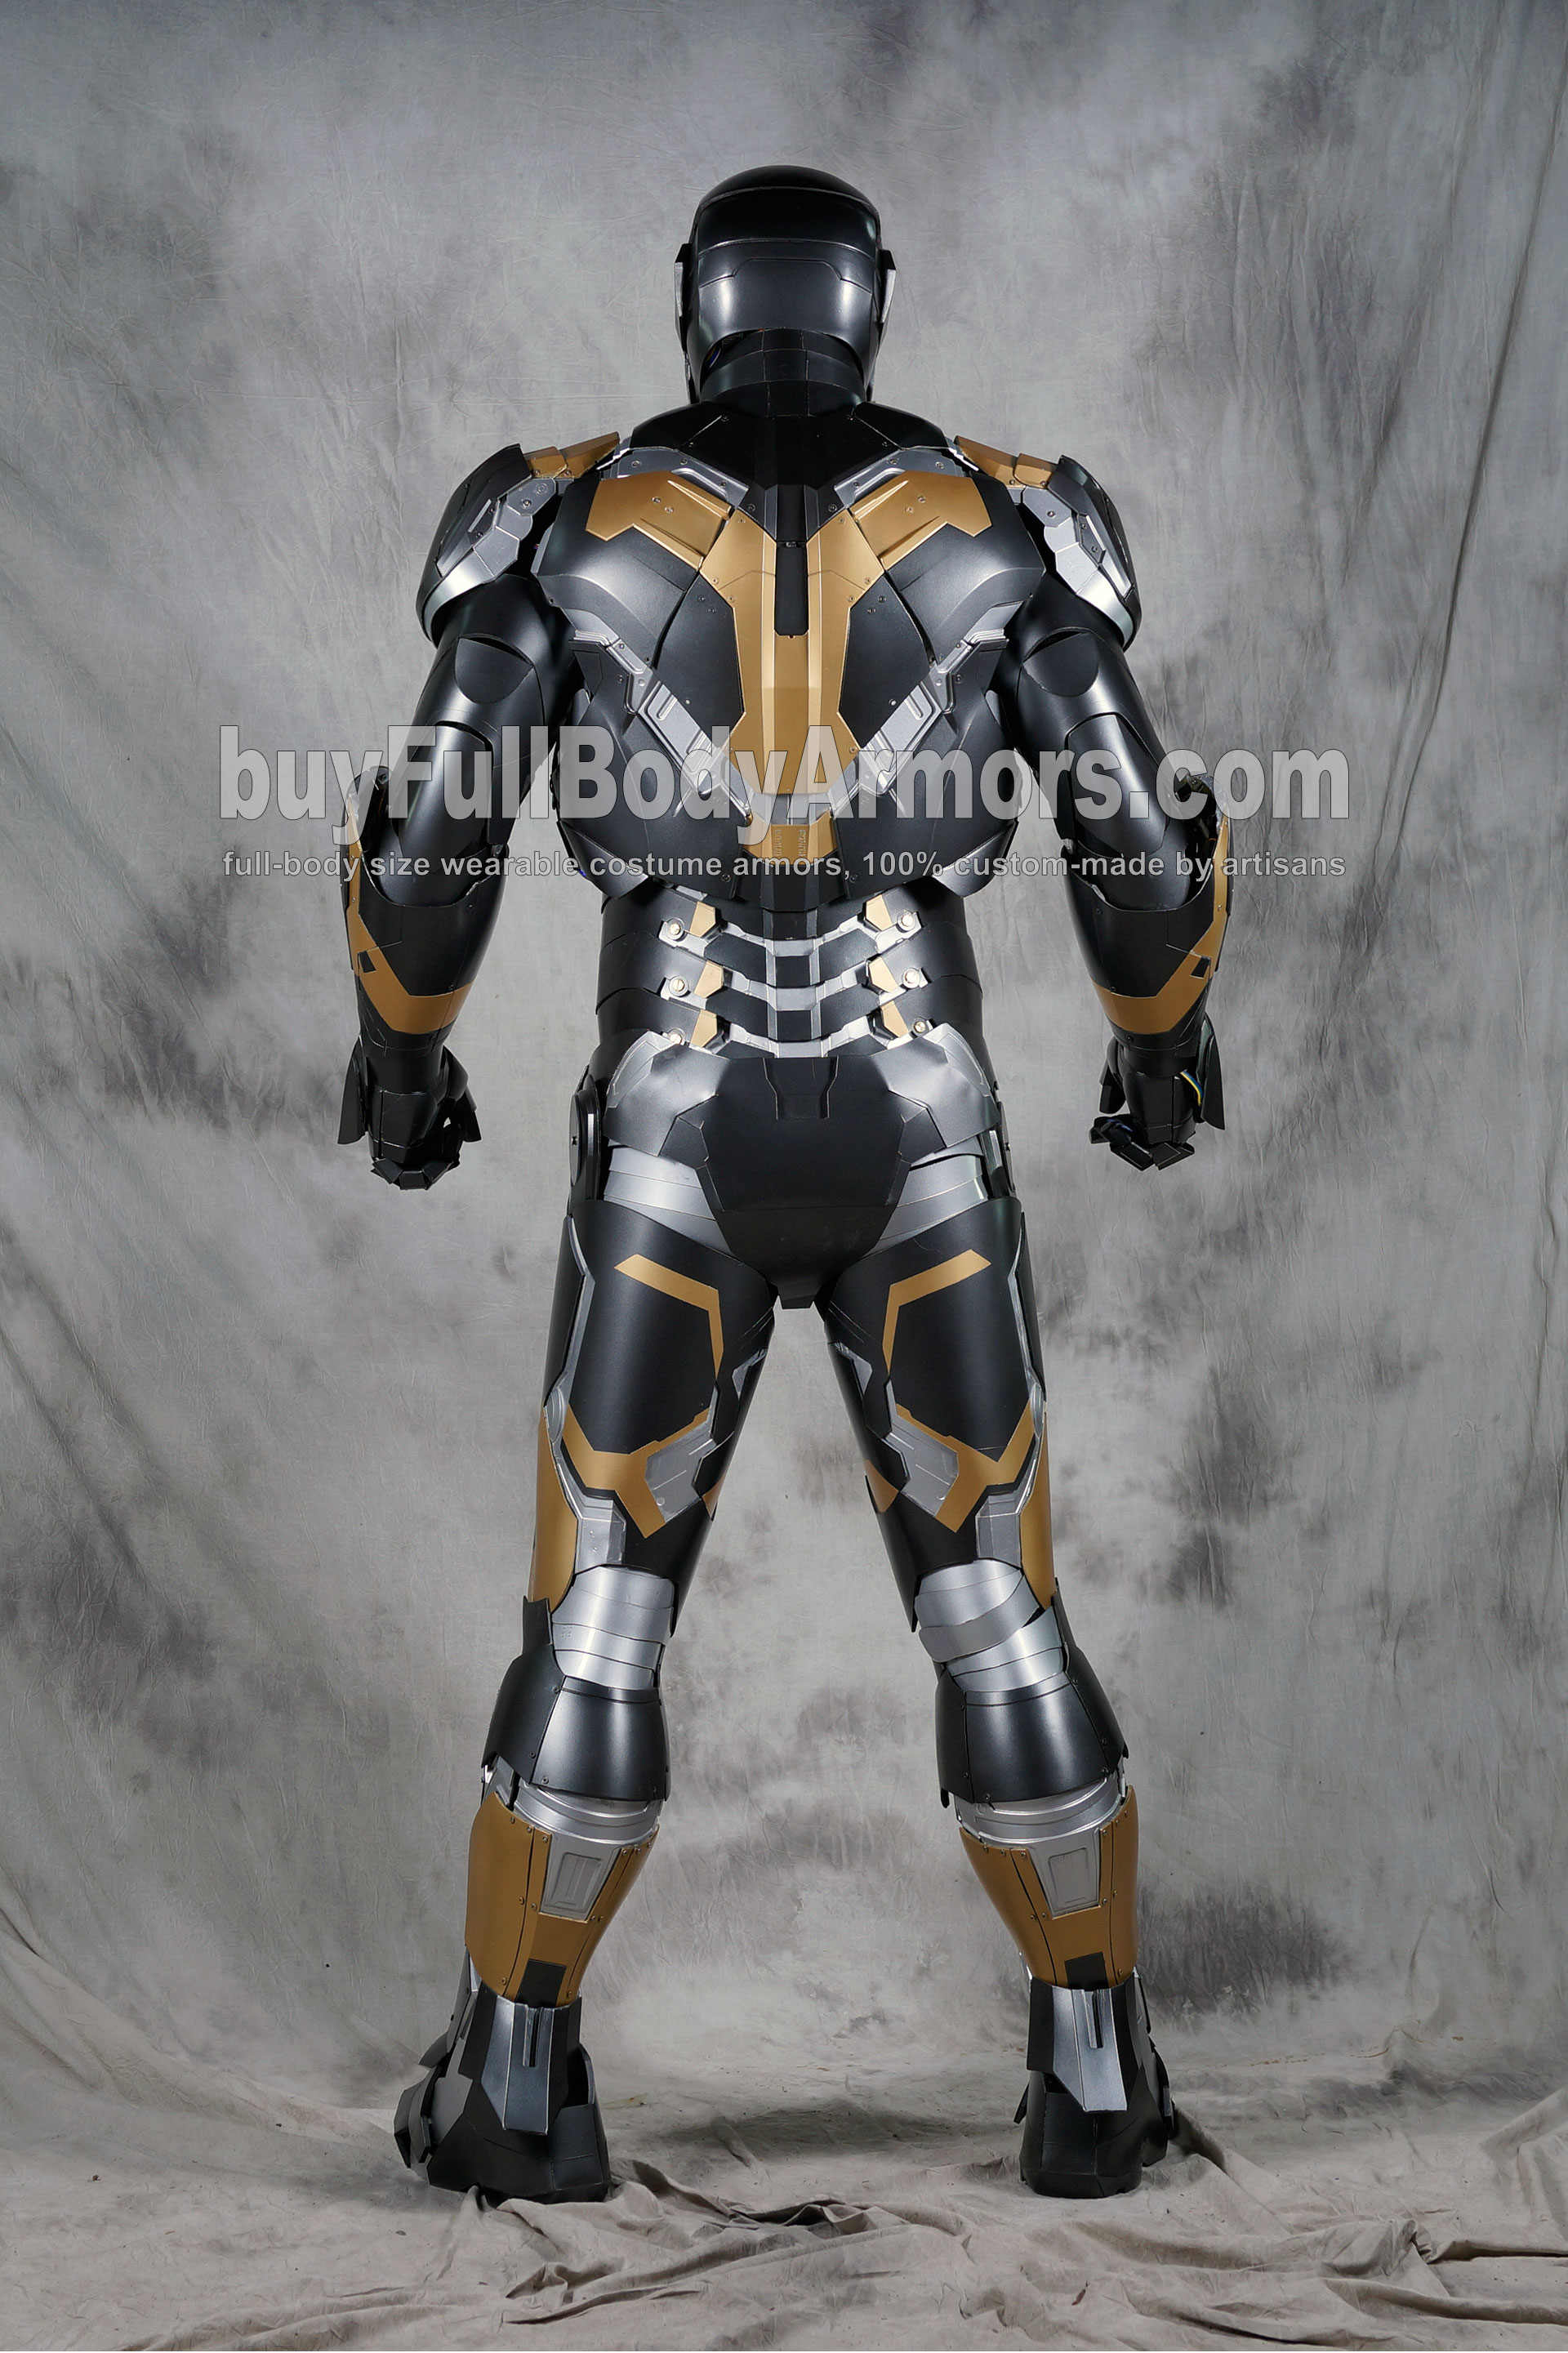 [Special Edition] Black Gold Wearable Iron Man Suit Mark 43 XLIII Armor Costume  3